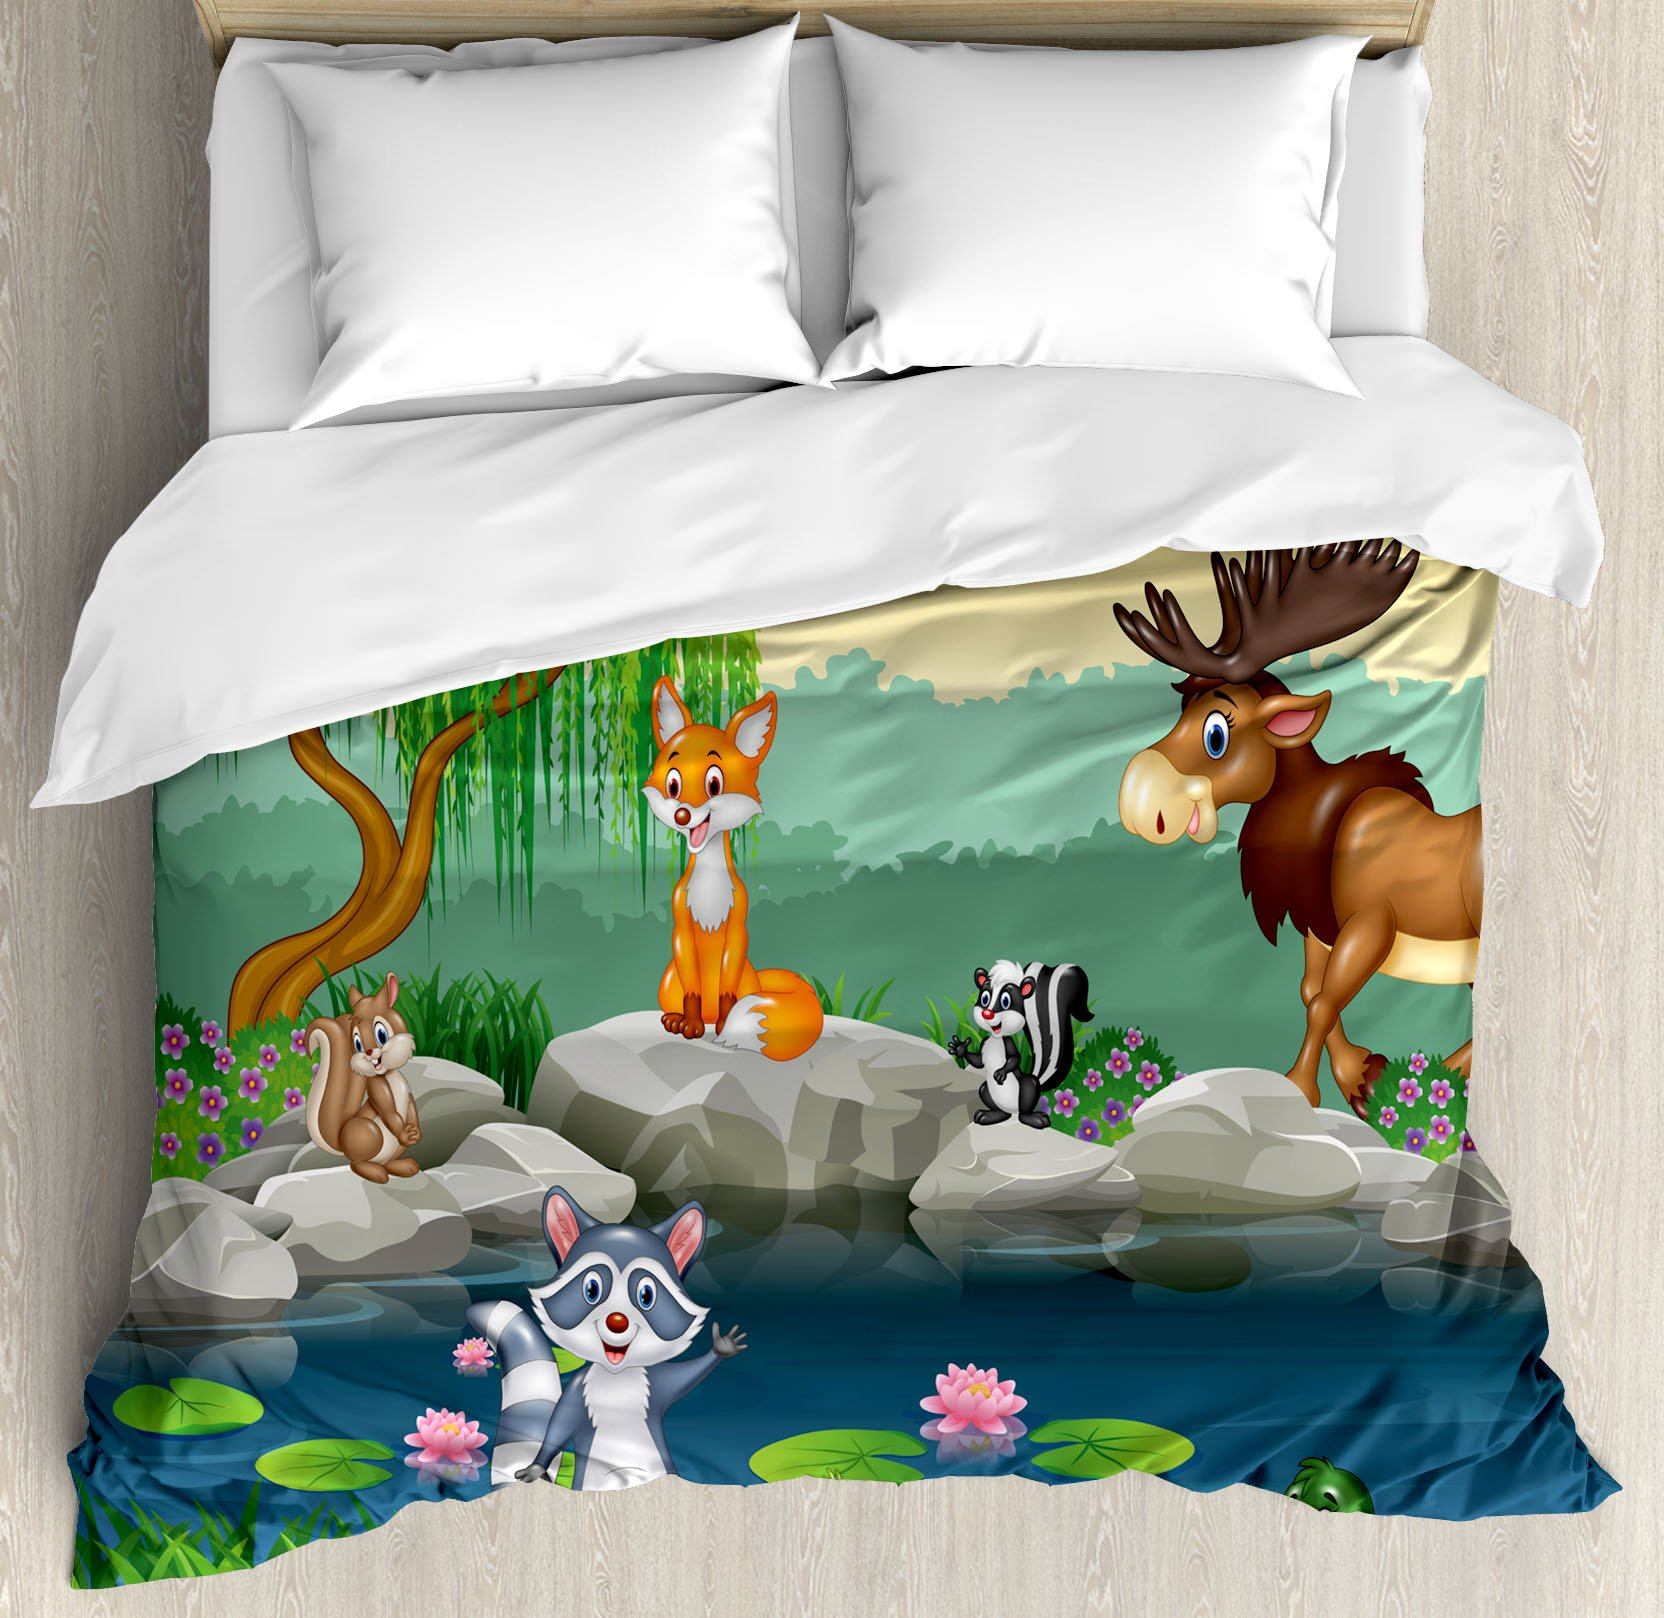 Cartoon Decor Duvet Cover Set by Ambesonne, Funny Mascots Animals by the Lake Moose Fox Squirrel Raccoon Kids Nursery Theme, 3 Piece Bedding Set with Pillow Shams, Queen / Full, Multi